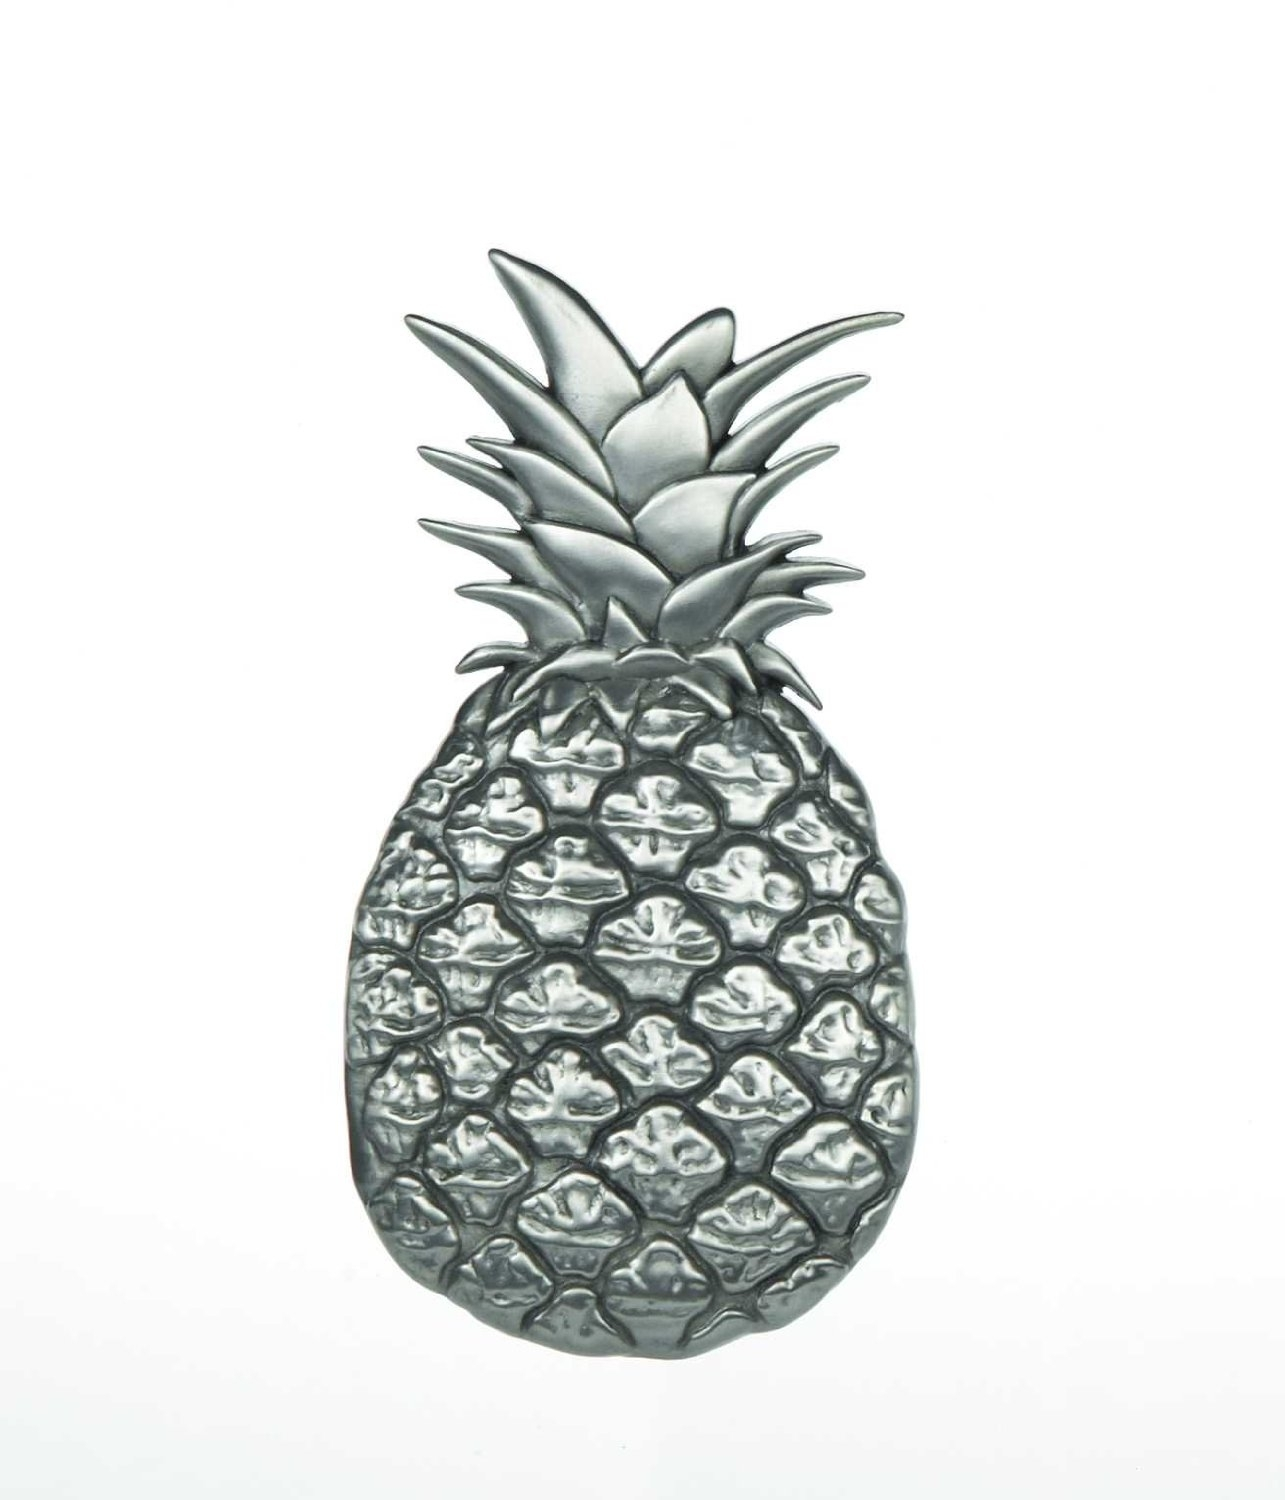 Home Lighting : Elegance Hinkley Pineapple Outdoor Lights , Hinkley intended for Outdoor Pineapple Lanterns (Image 8 of 20)